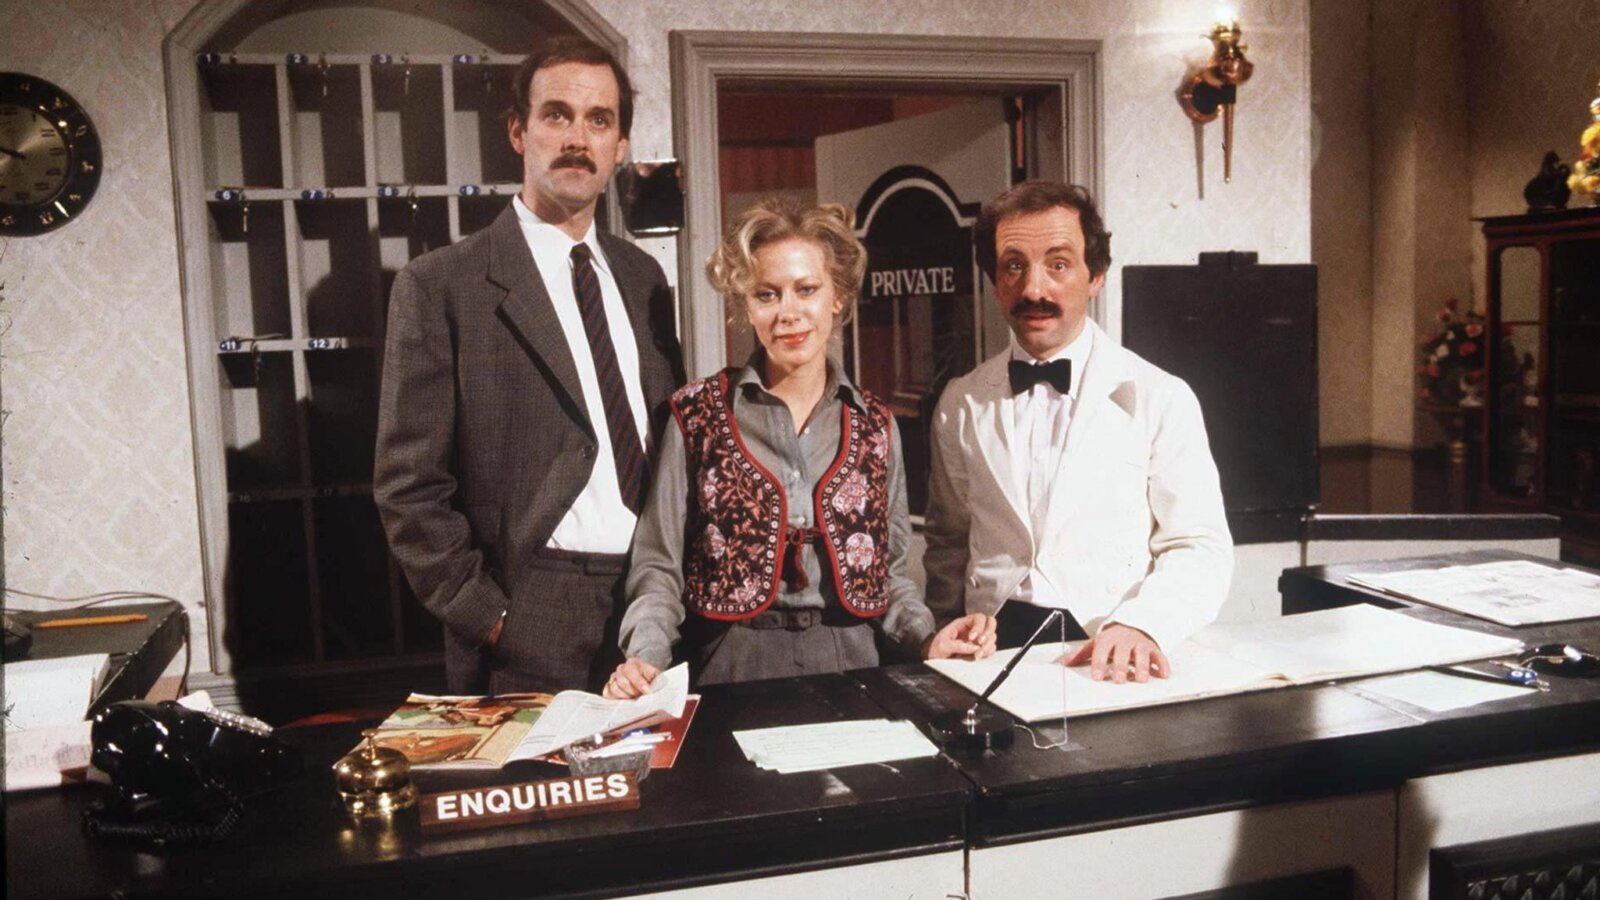 Fawlty Towers' famous 'don't mention the war!' episode temporarily removed from UKTV, The Manc